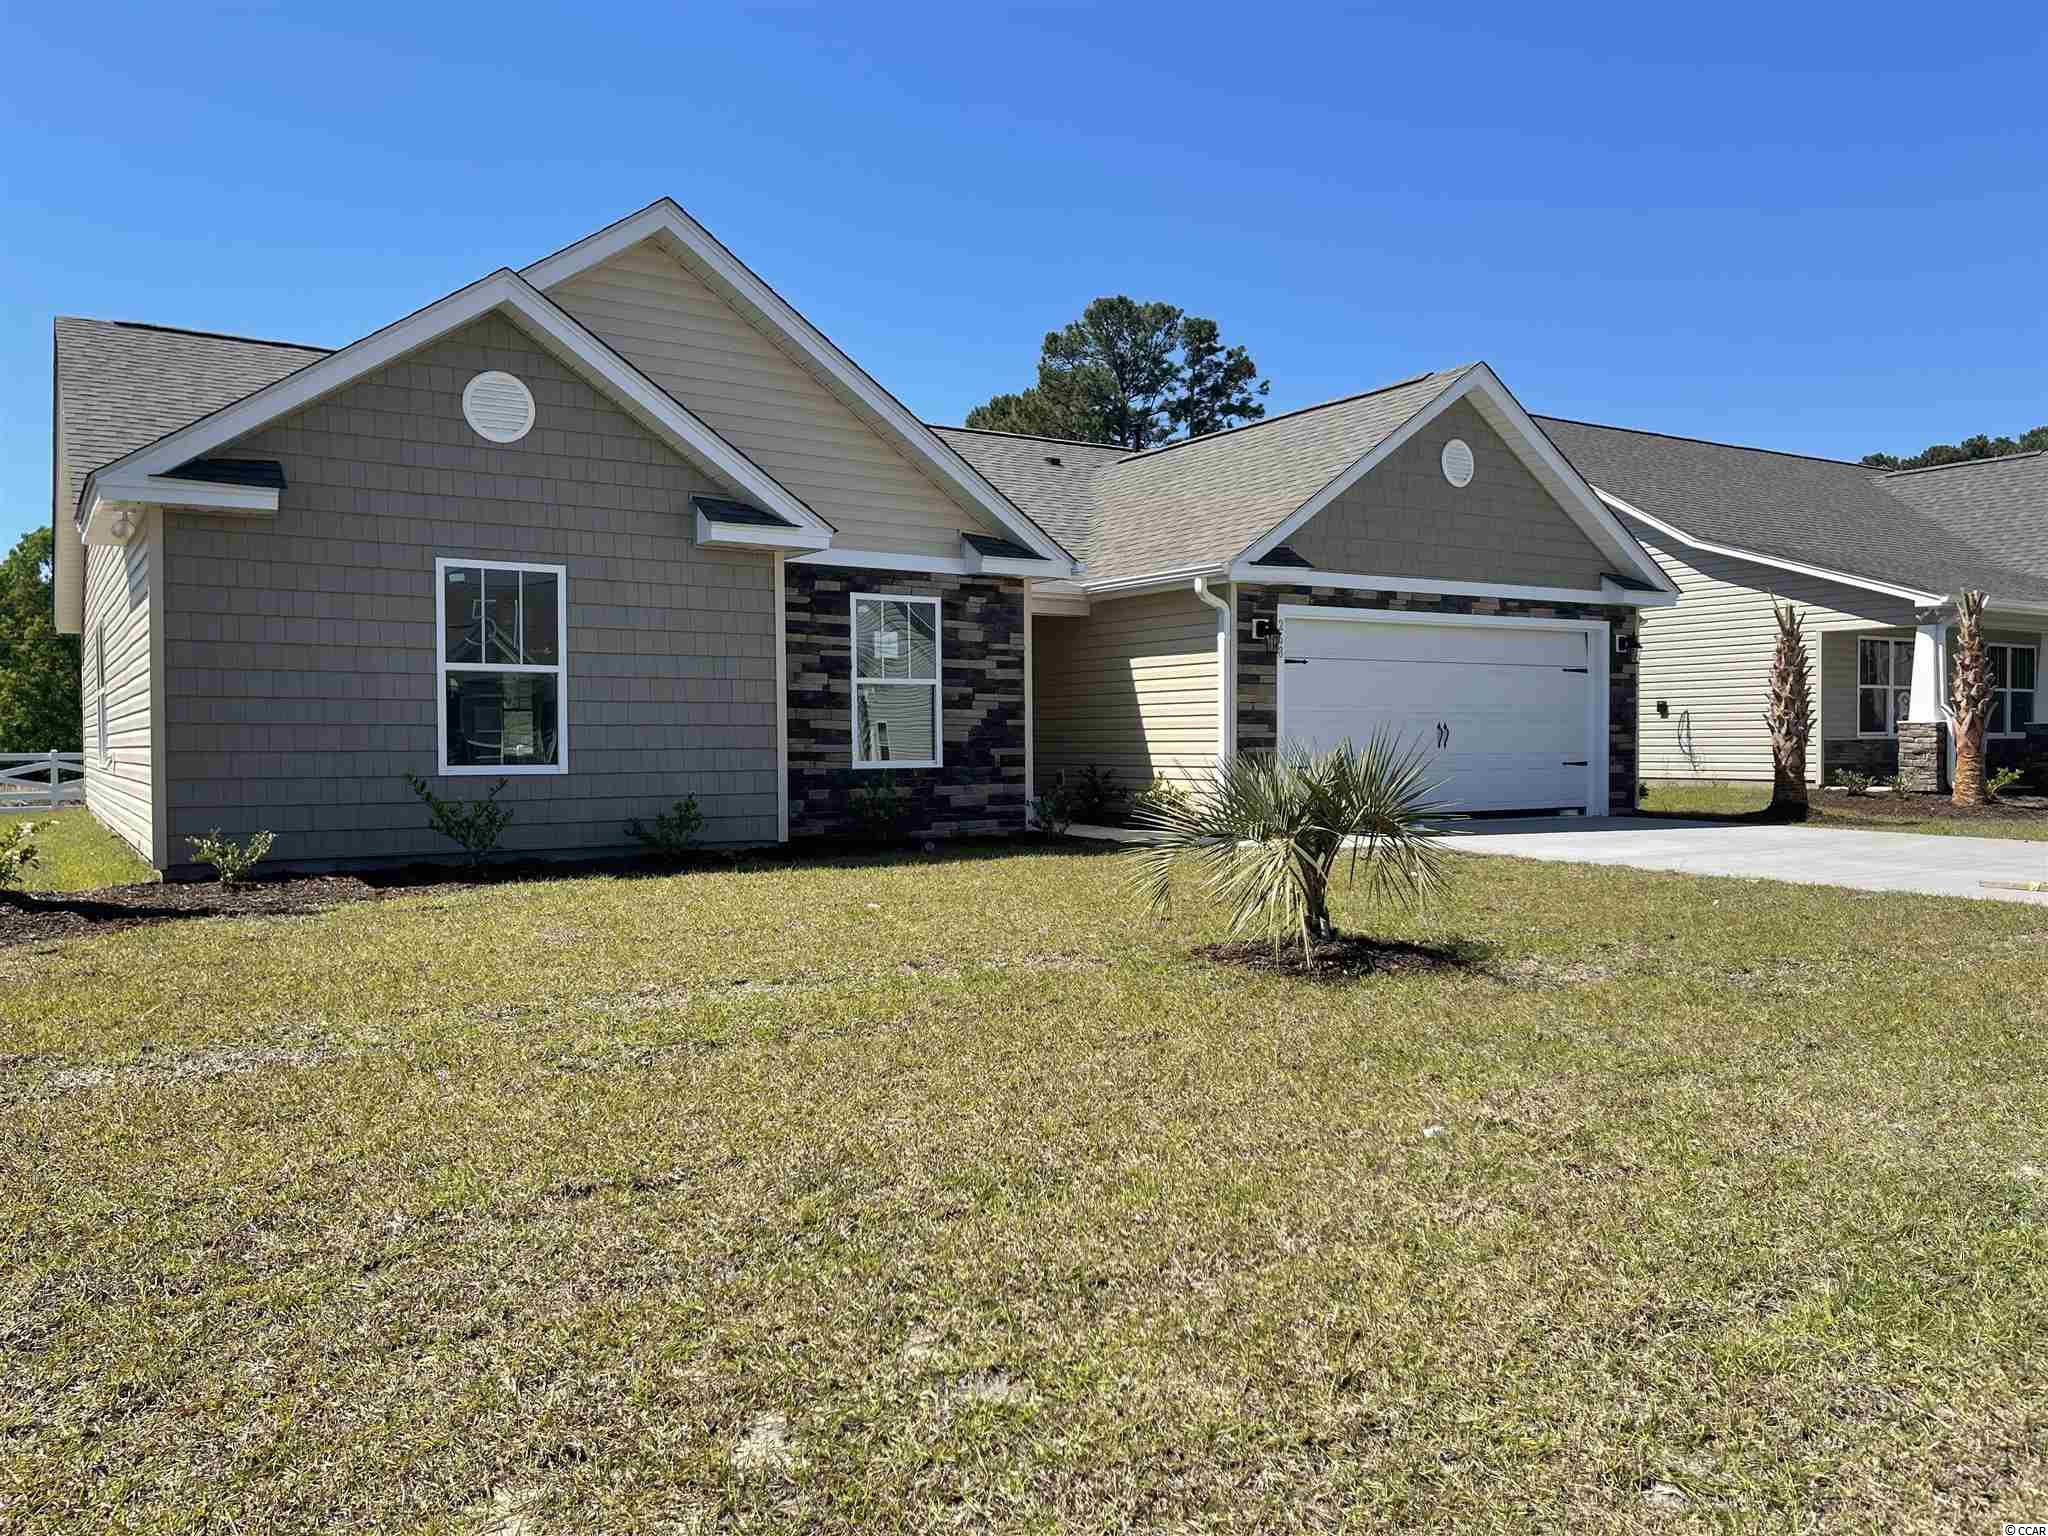 """Natural Gas quiet community located in Little River/North Myrtle Beach only a few miles from the Beach and major shopping! This is the Perl floor plan built on a 0.20 ac home site featuring 3 bedrooms, 2 baths. This home includes finished 2 car garage and a covered front porch!! Spacious and open kitchen with lots of counter space, granite countertops, crown molding on kitchen cabinets with hardware included. 5 ft fiberglass shower in Master bathroom and a large master walk in closet. Ceramic tile in all bathrooms and Laundry room, LVP flooring in Family Room, Foyer, Hall. Vaulted ceiling in Family room and every bedroom. Wainscot and 5 1/2 """" beaded baseboards for Custom look!! Home also includes TAEXX pest control tubing, lawn irrigation and Ring video doorbell!!!Stone accents on the exterior as well. All measurements are approximate *Photos of a similar home* Some items on the photos may bean additional cost. Anticipating completion time March-April 2021"""